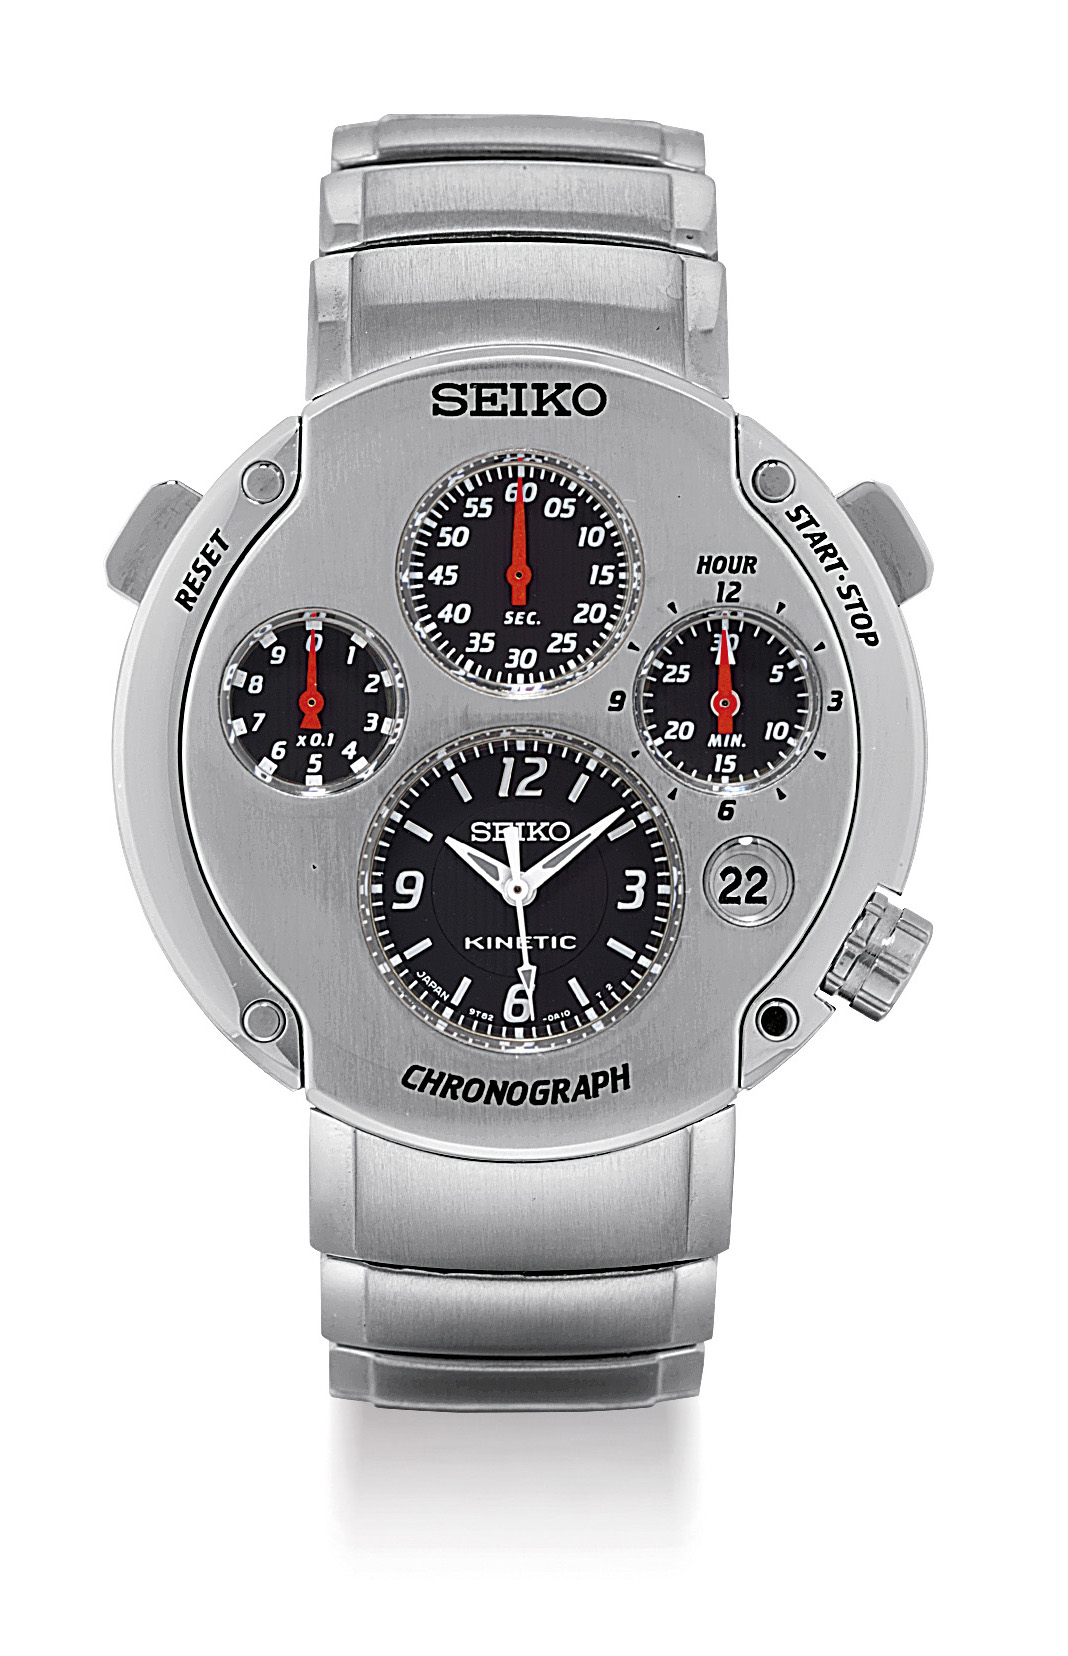 SEIKO. A STAINLESS STEEL LIMITED EDITION SELF-GENERATING QUARTZ CHRONOGRAPH WRISTWATCH WITH SWEEP CENTRE SECONDS, DATE AND BRACELET